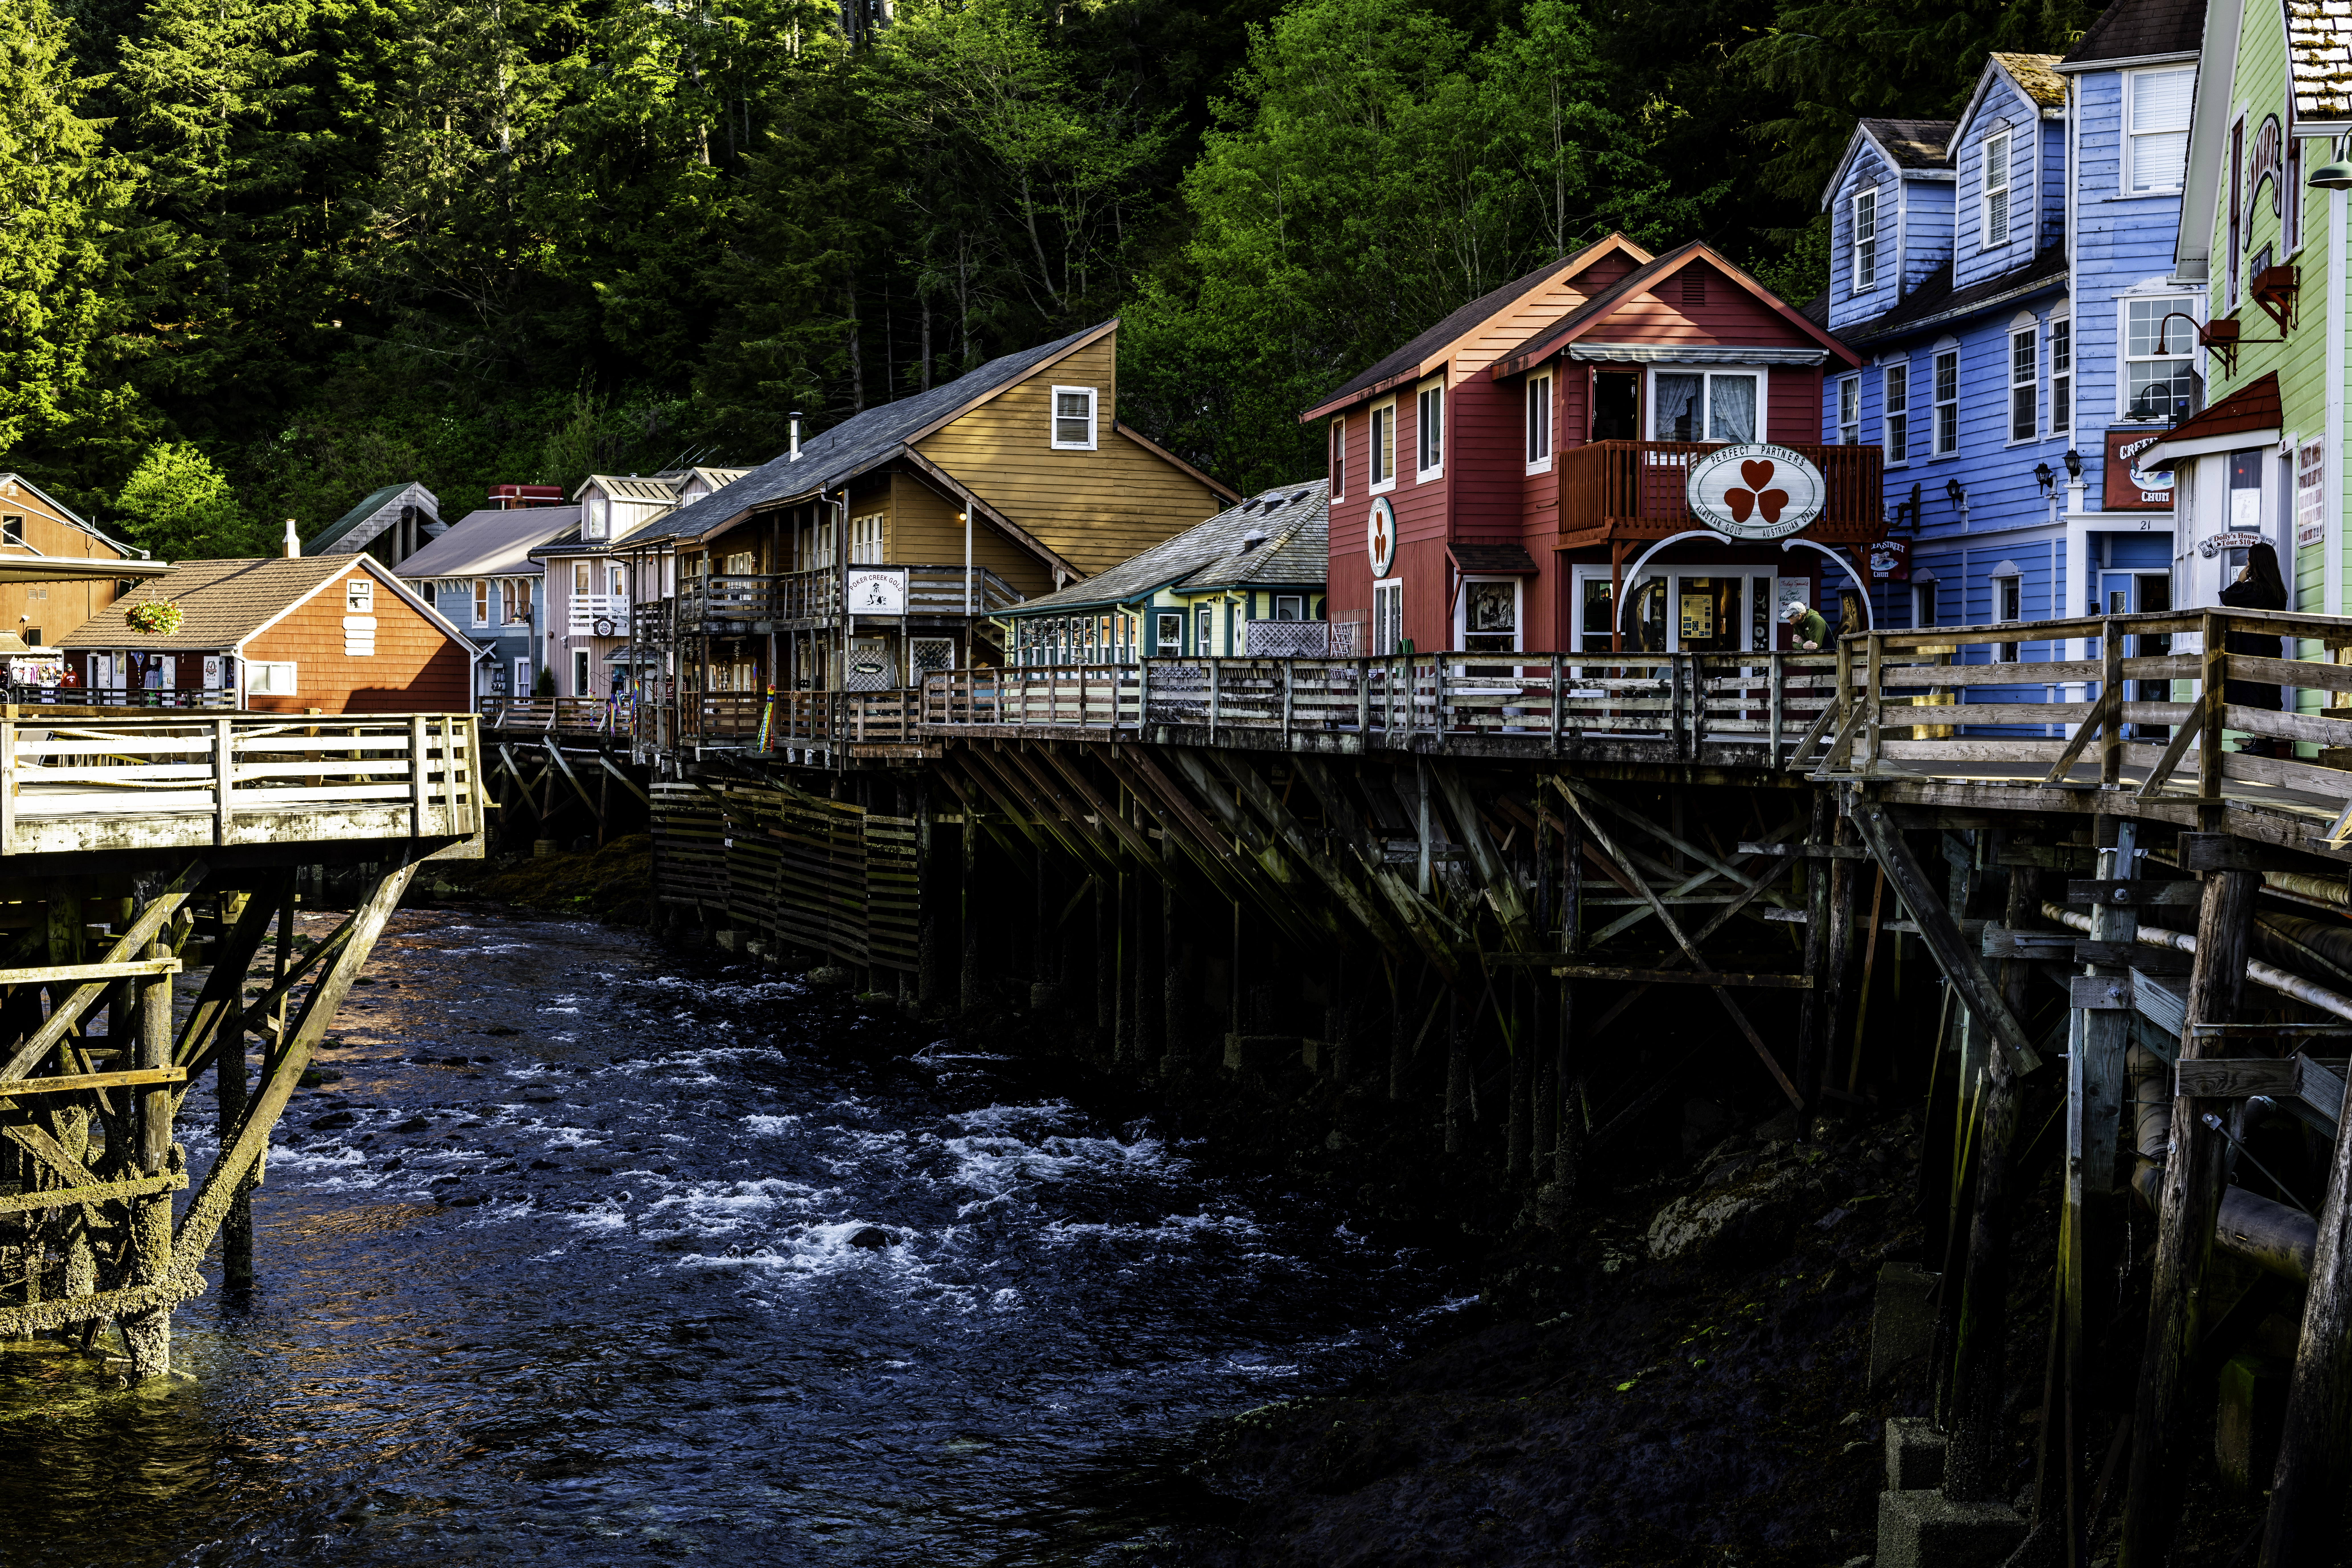 The quaint little creek street in Ketchikan